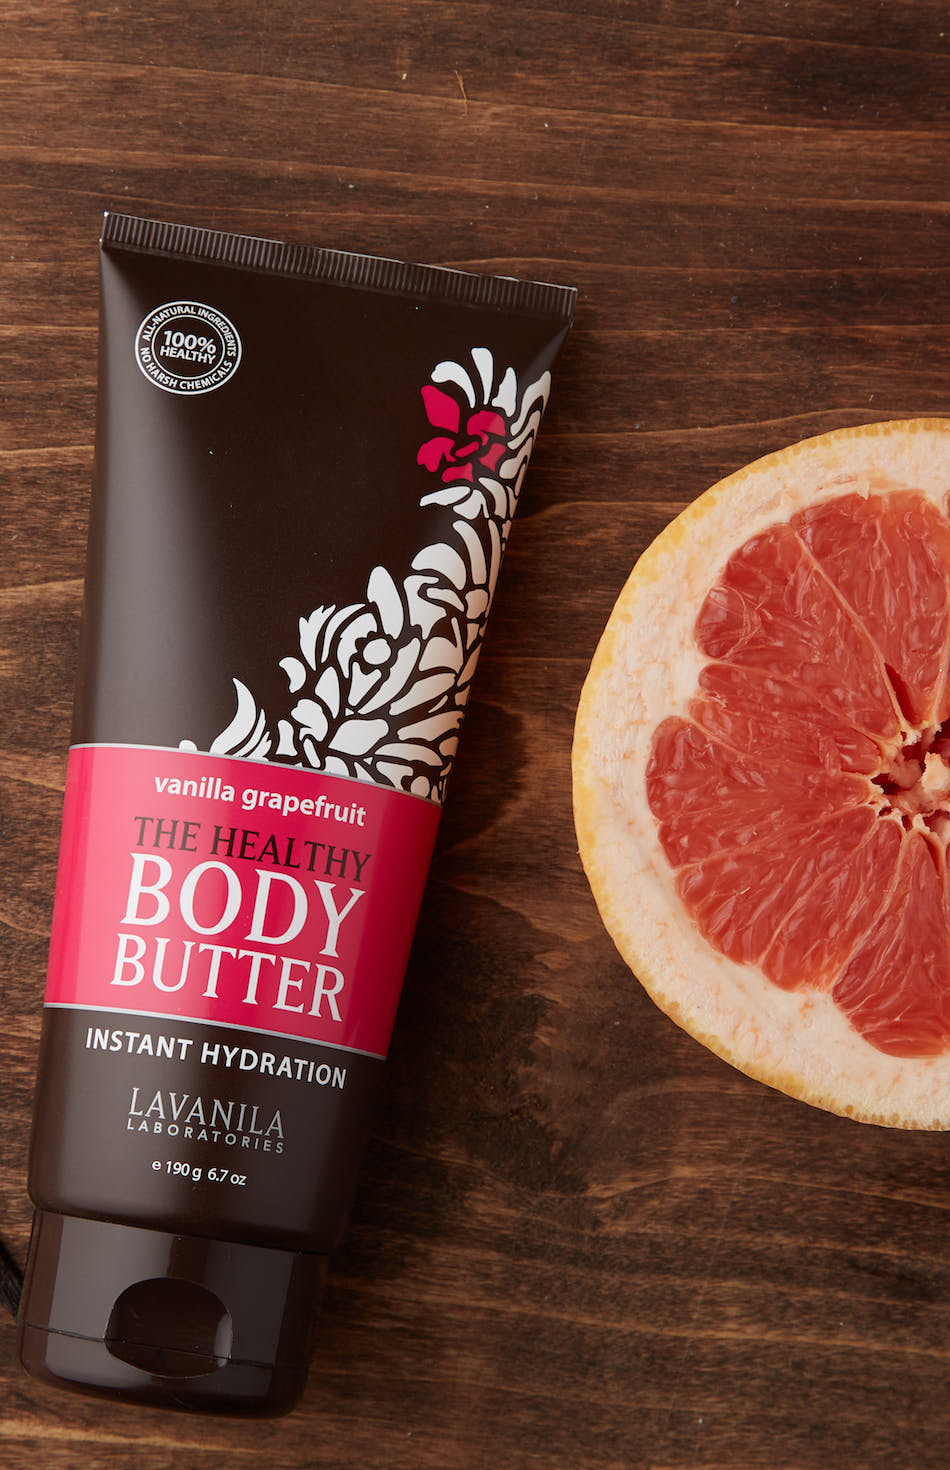 The Healthy Body Butter Vanilla Grapefruit